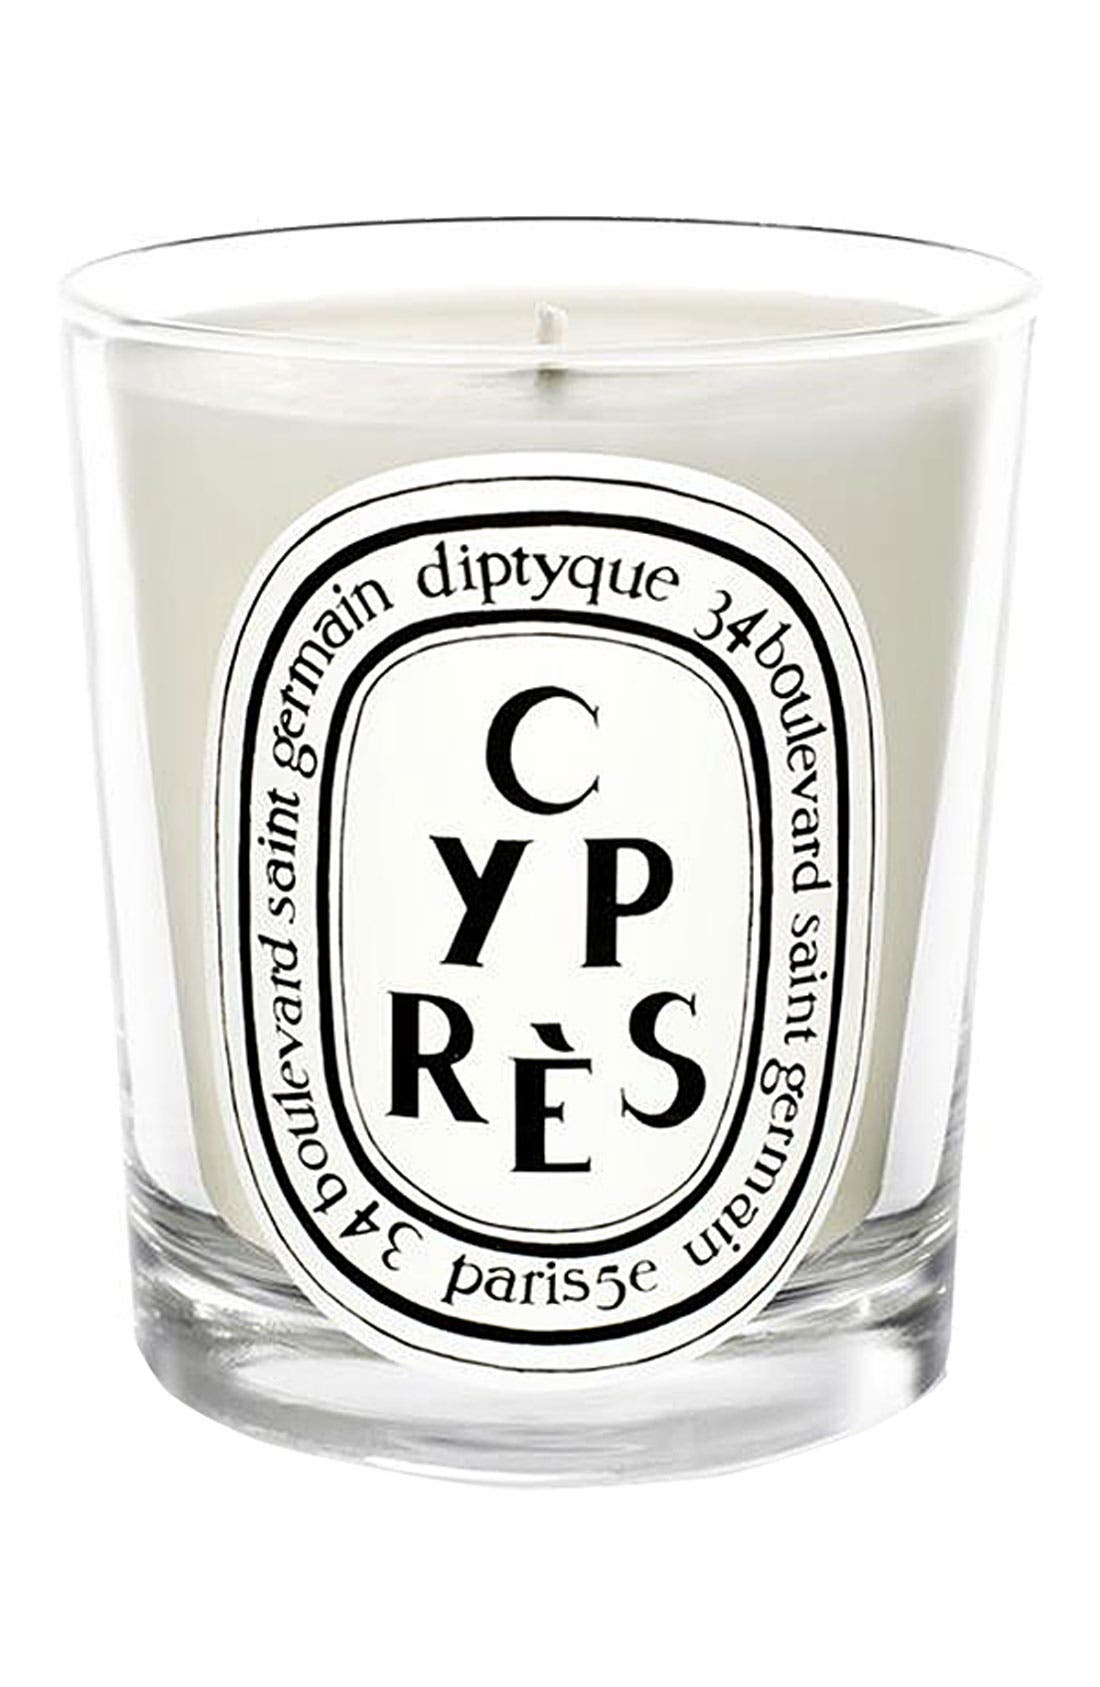 Alternate Image 1 Selected - diptyque 'Cyprès' Scented Candle